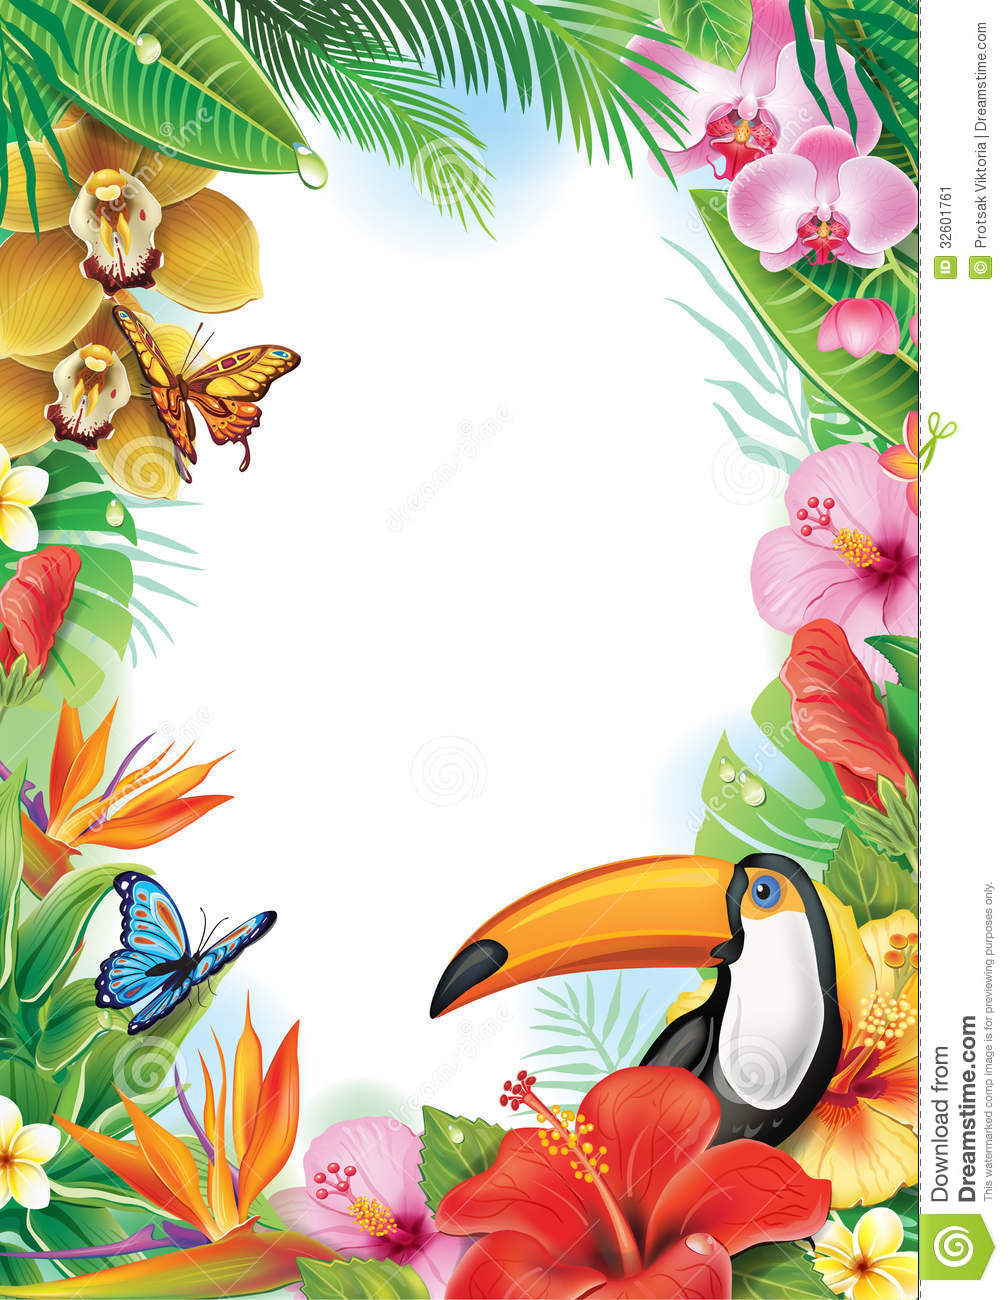 Exotic Animal Wallpaper Frame With Tropical Flowers And Toucan Stock Vector